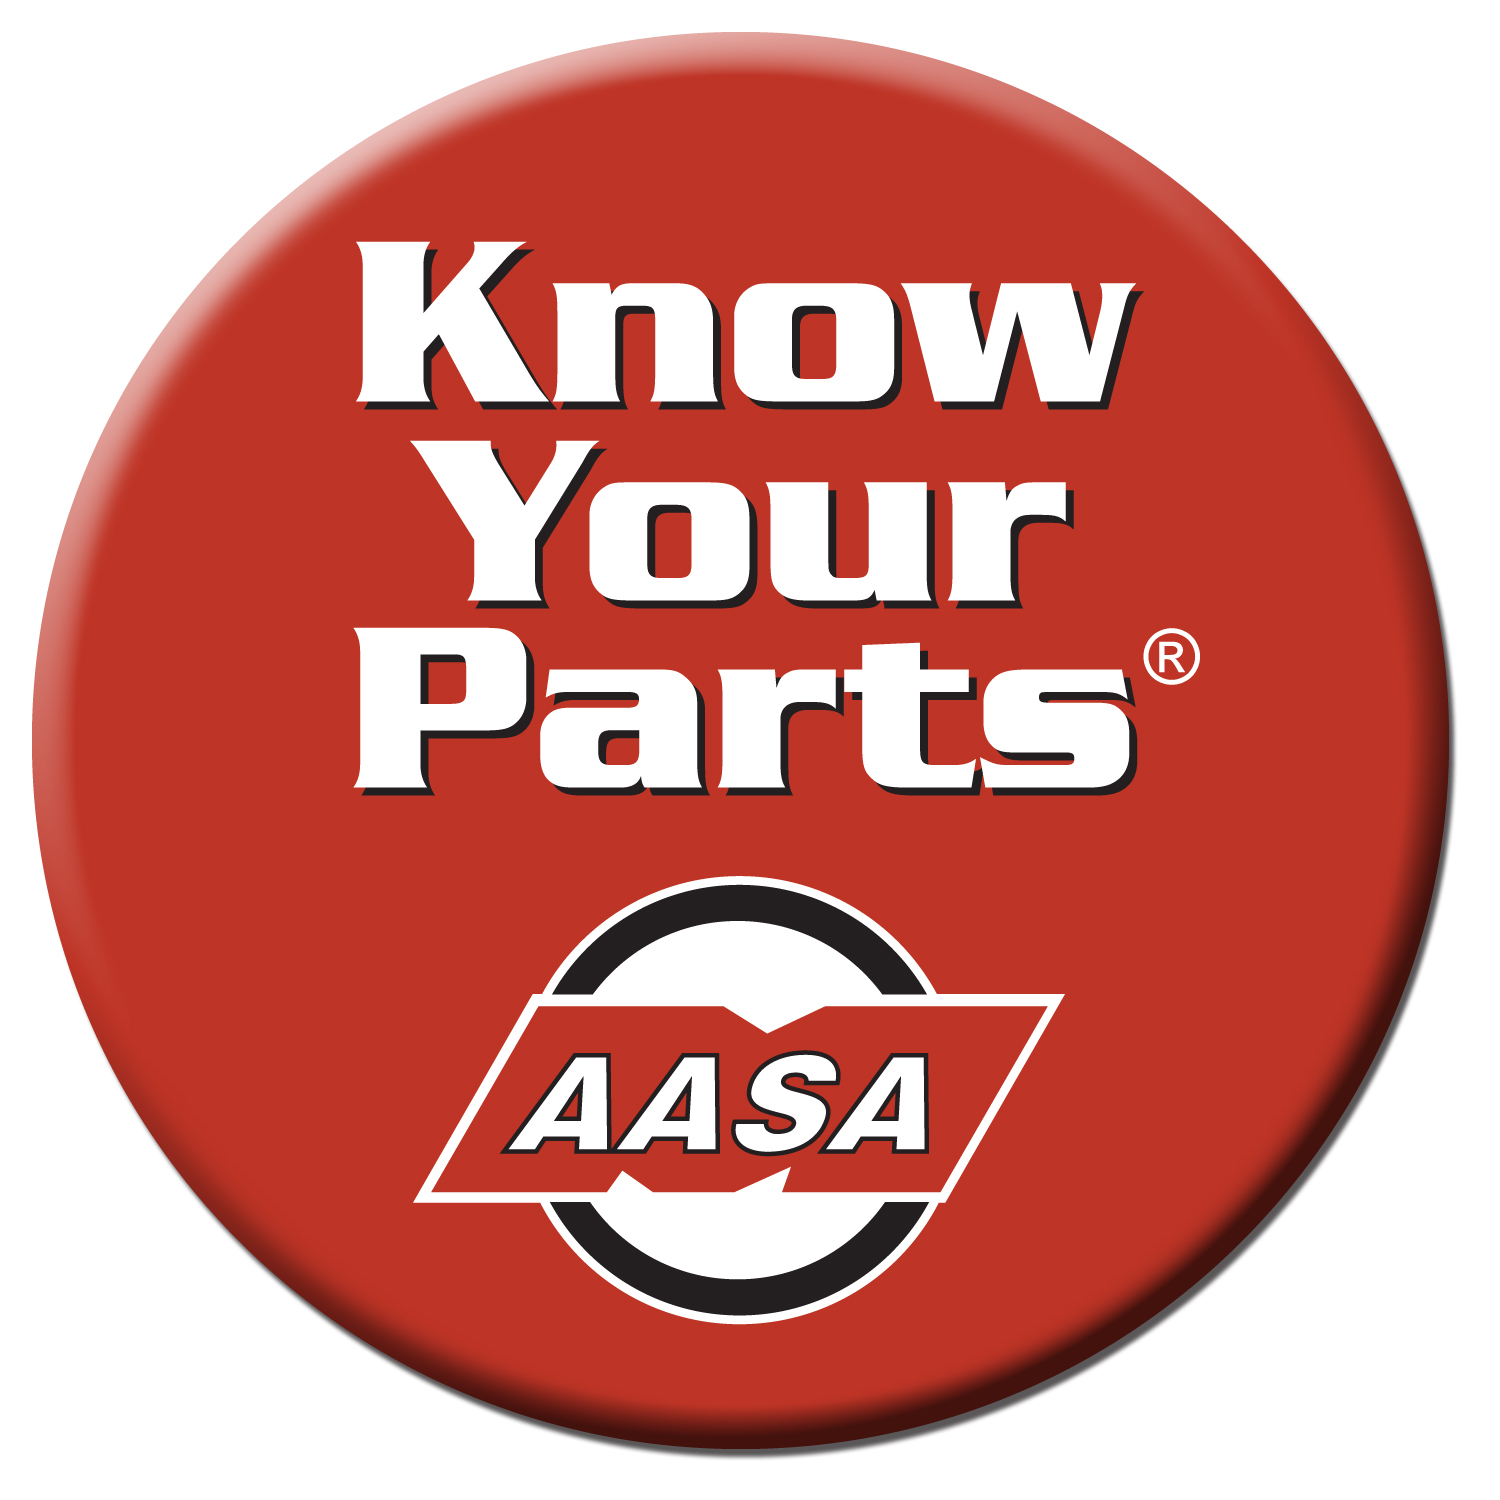 KnowYourPartsButton